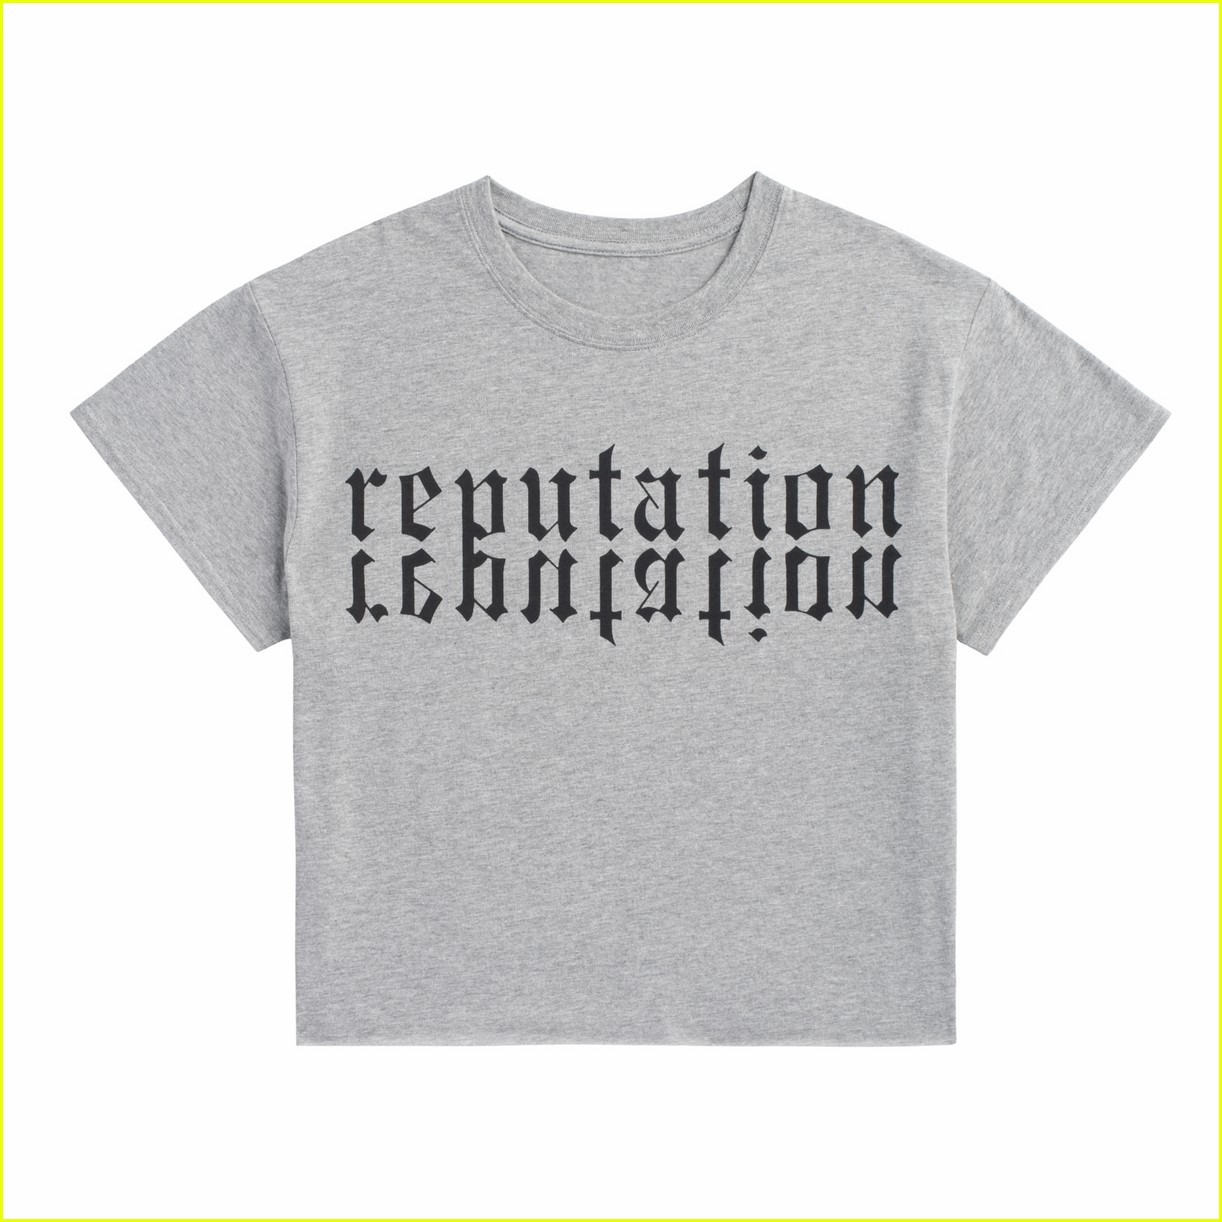 Taylor Swift Debuts 'reputation Tour' Merchandise, Available Now!: Photo 4075333 ...1222 x 1222